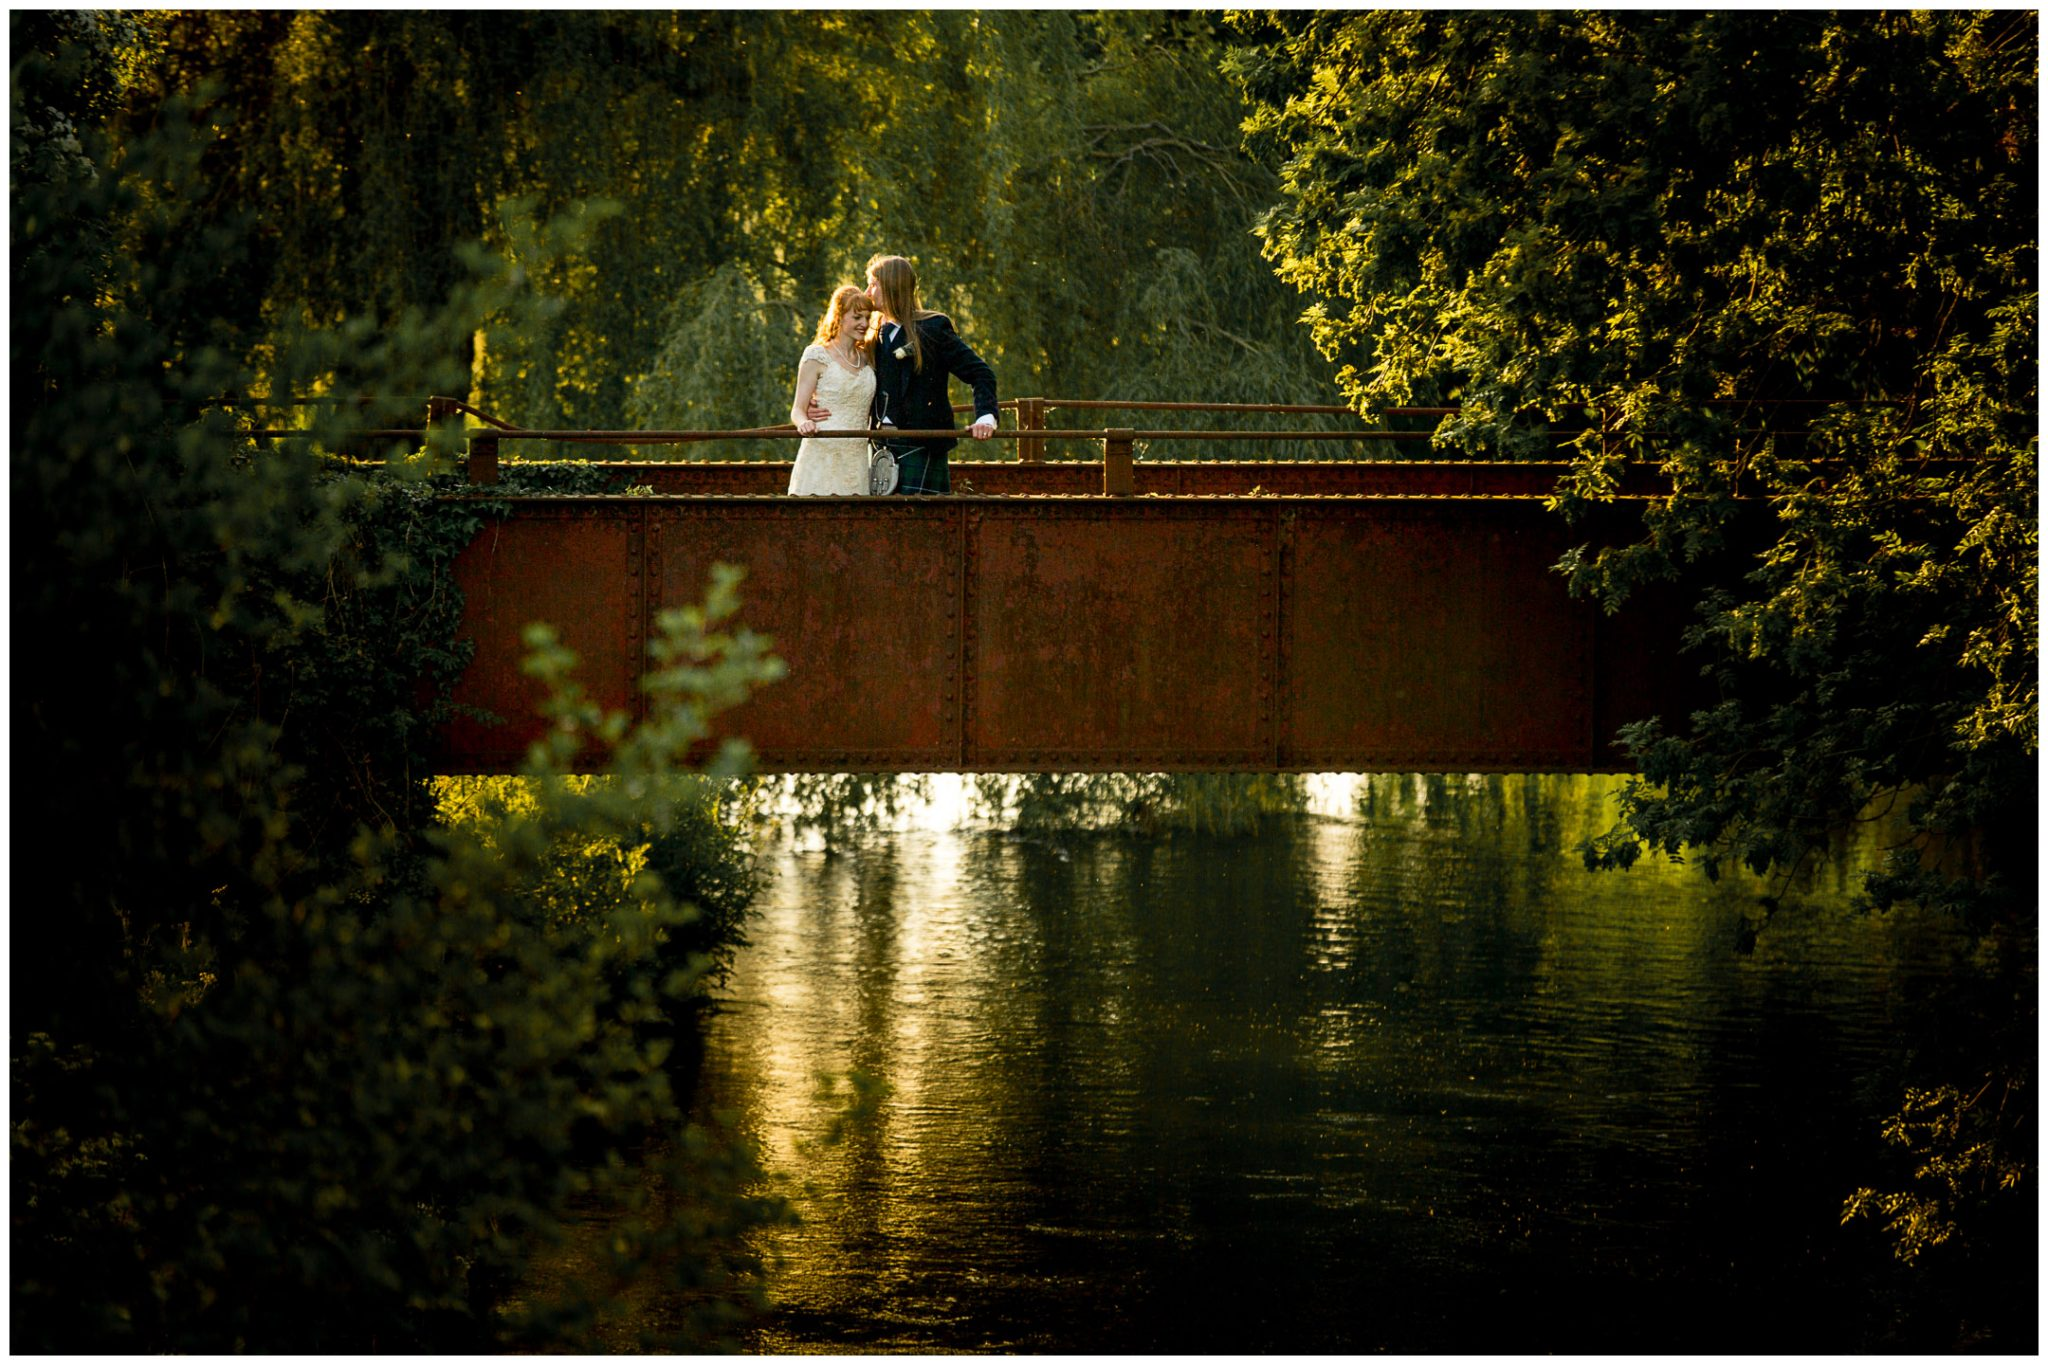 Bride and groom in evening light on bridge behind wedding venue